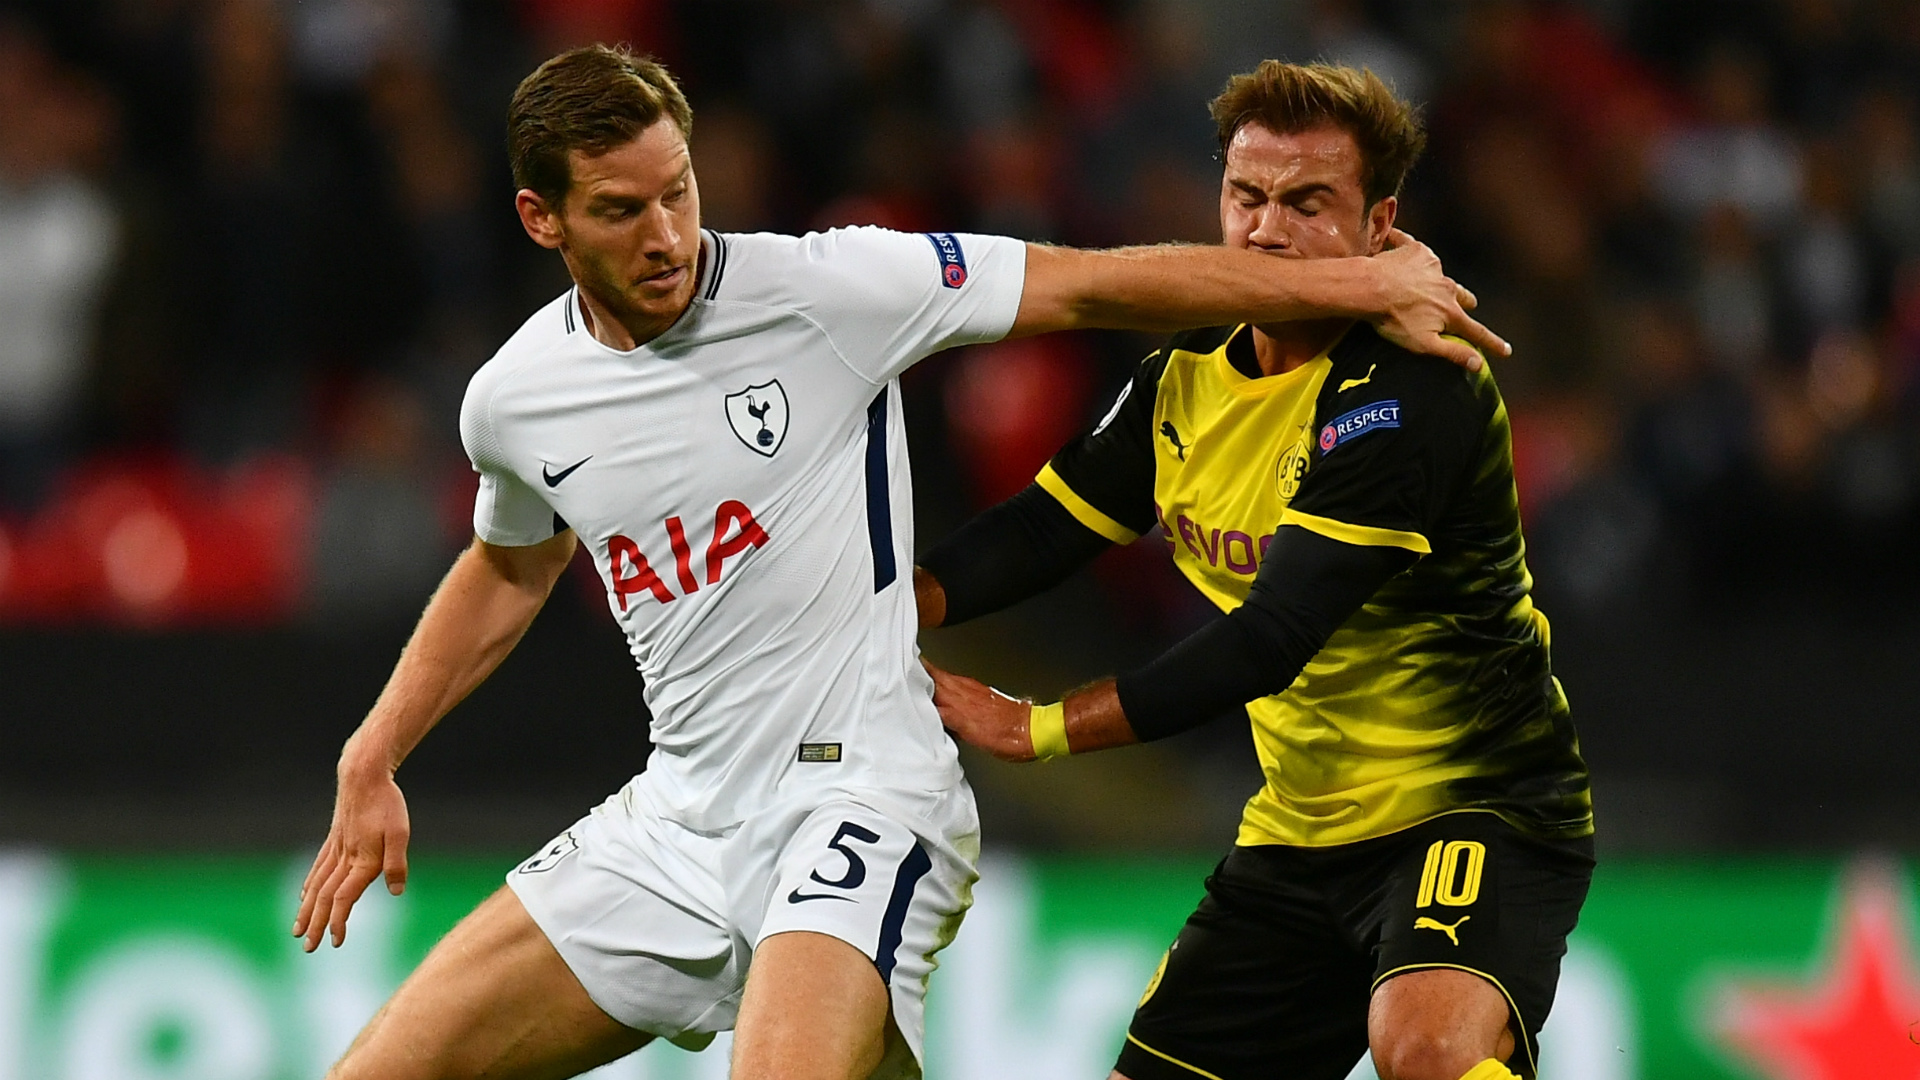 Pochettino To Make 3 Key Changes: Predicted Tottenham XI vs Borussia Dortmund